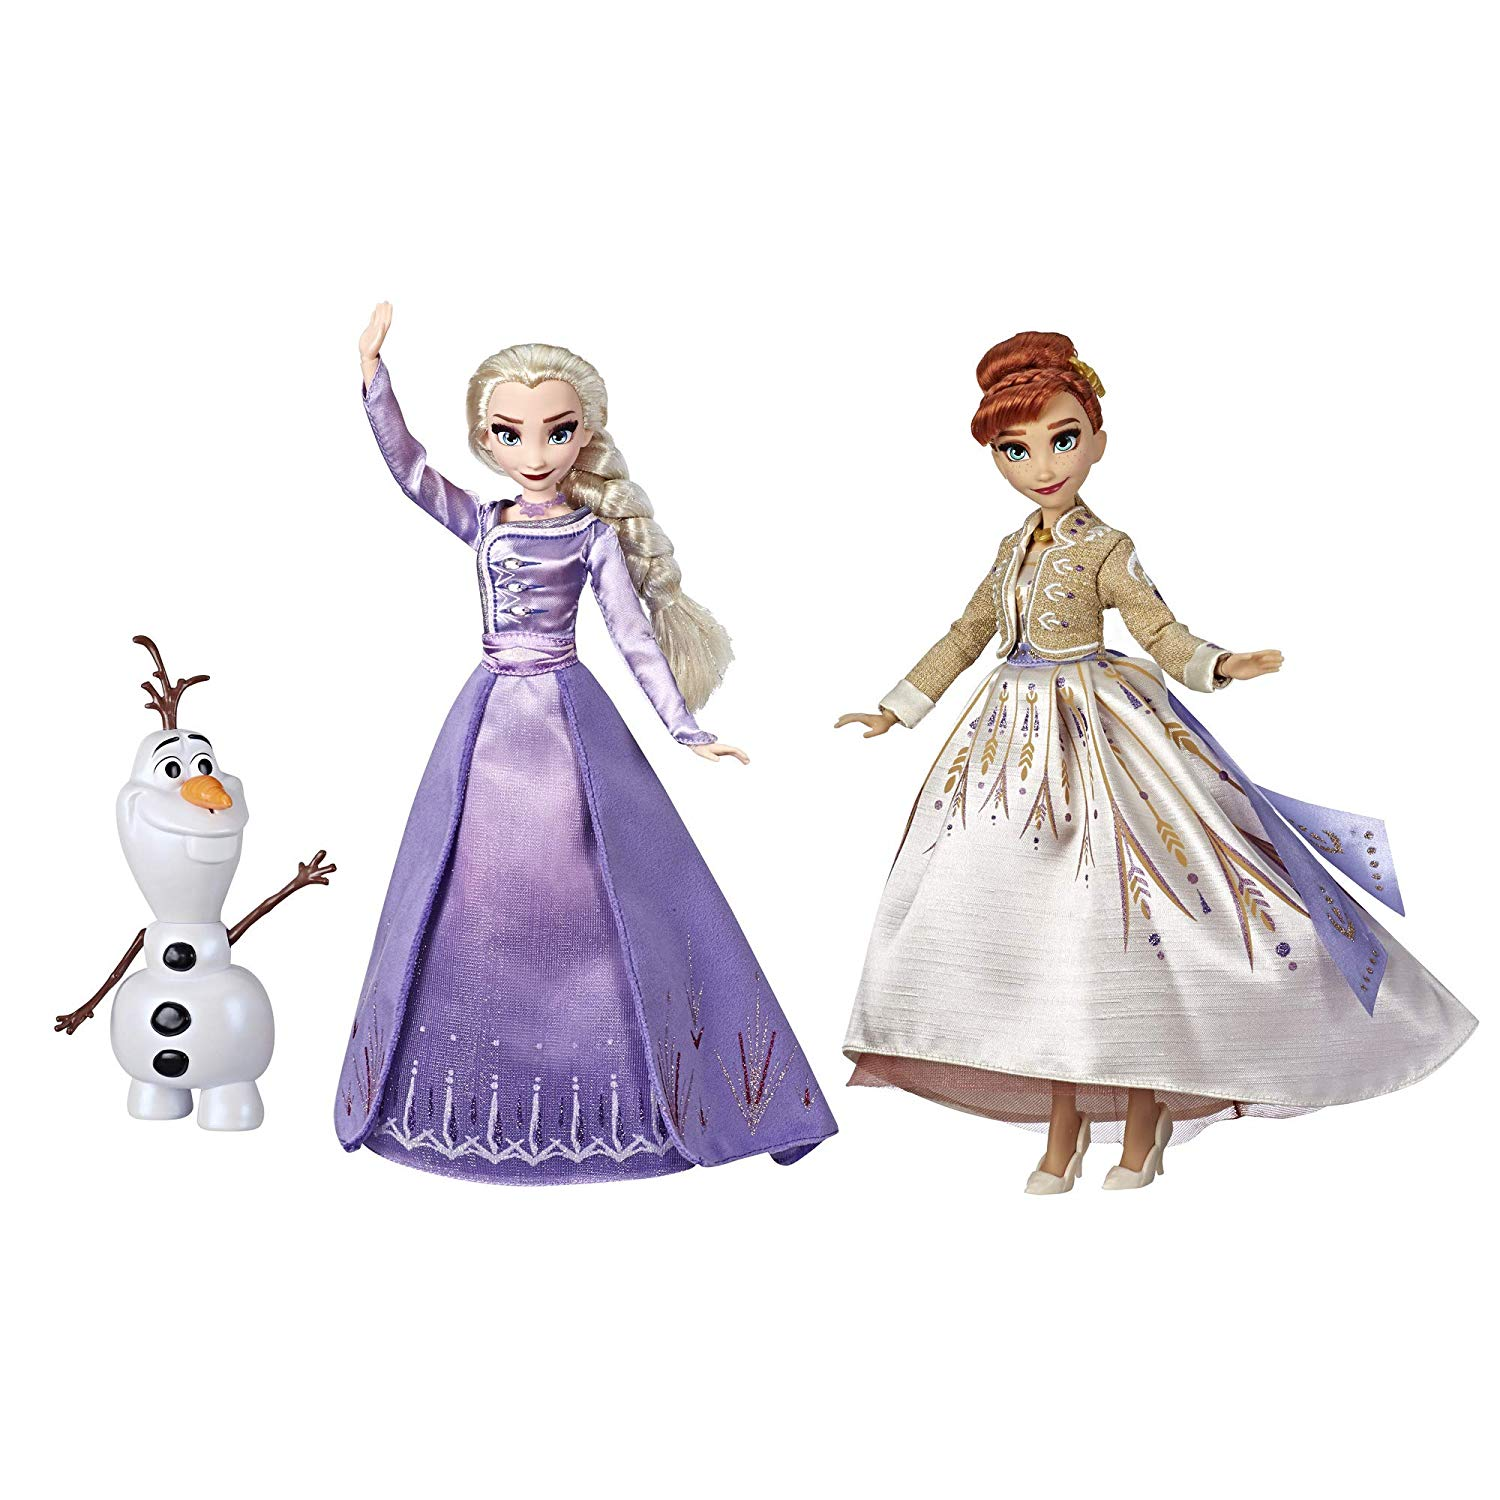 Frozen Disney Elsa, Anna, & Olaf Deluxe Fashion Doll Set- best gifts for kids